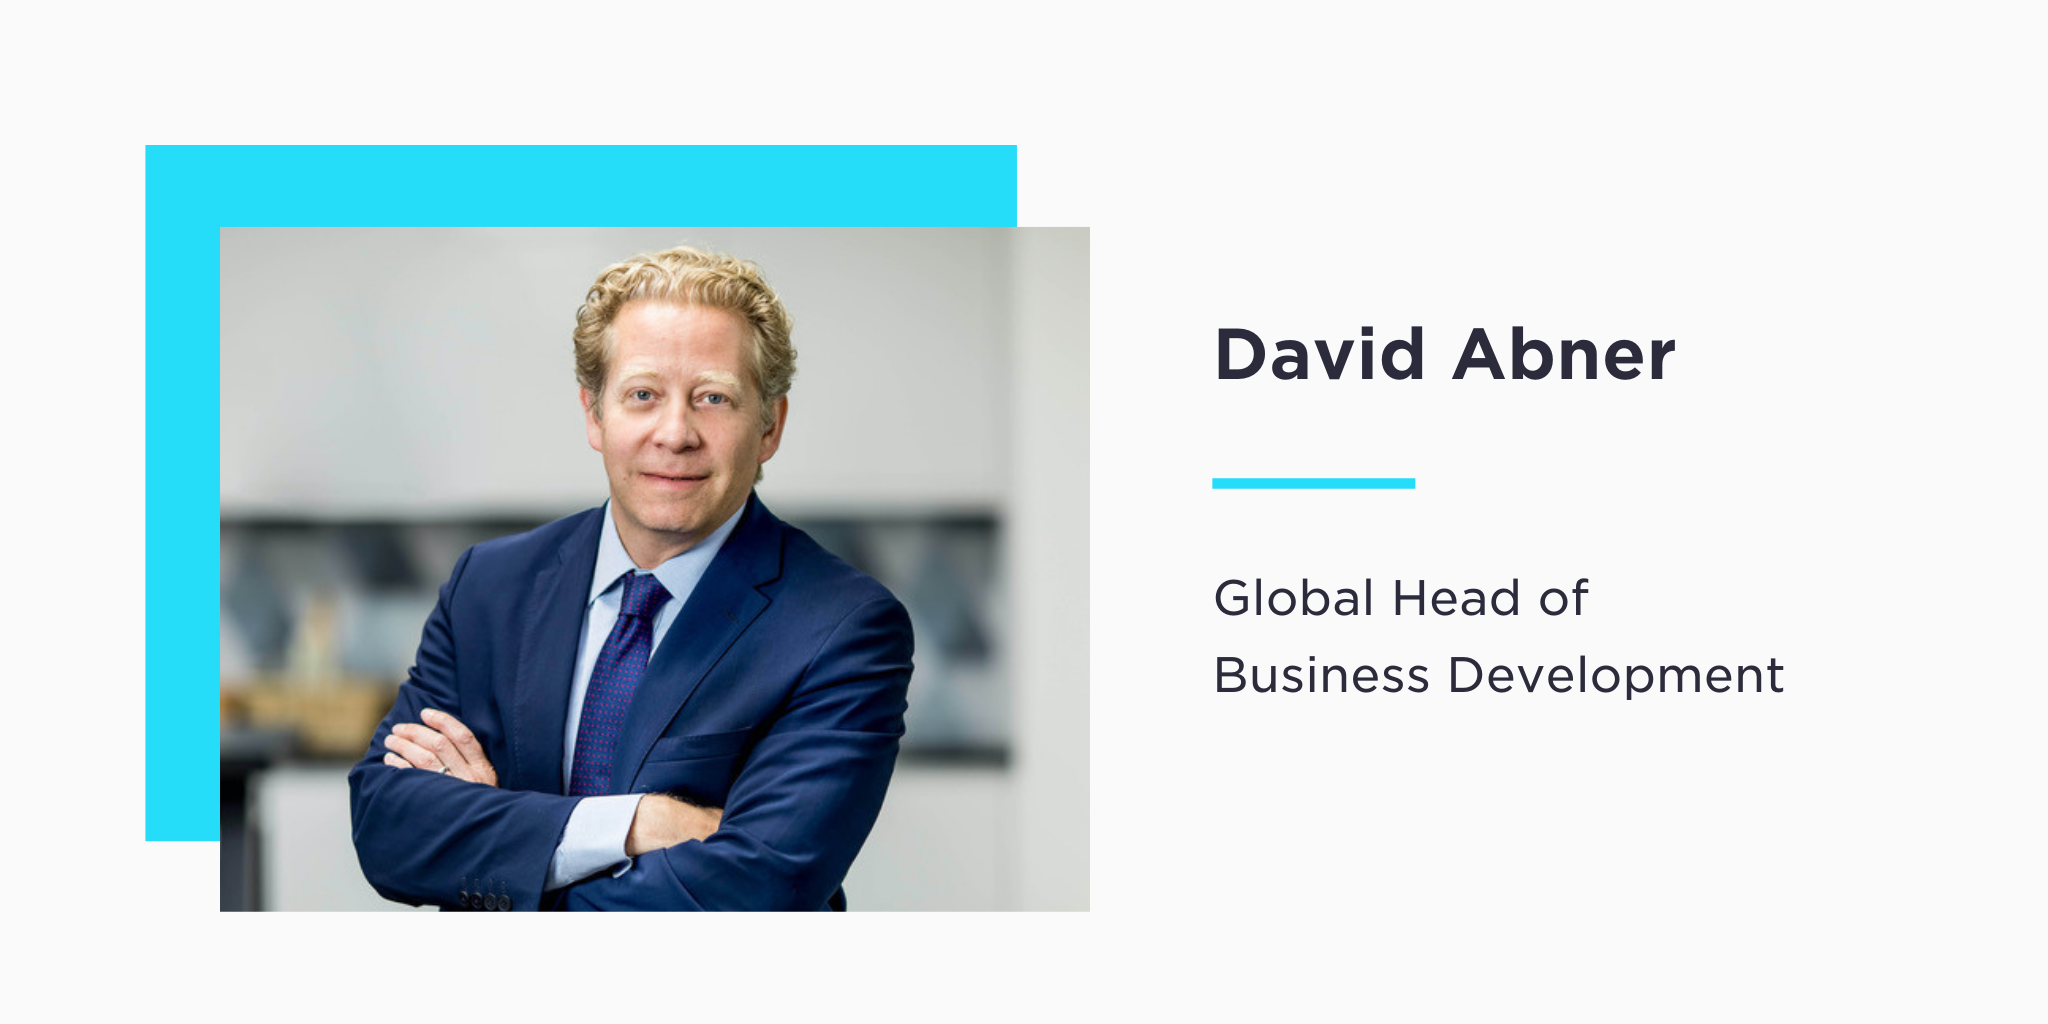 Gemini Welcomes David Abner as Global Head of Business Development